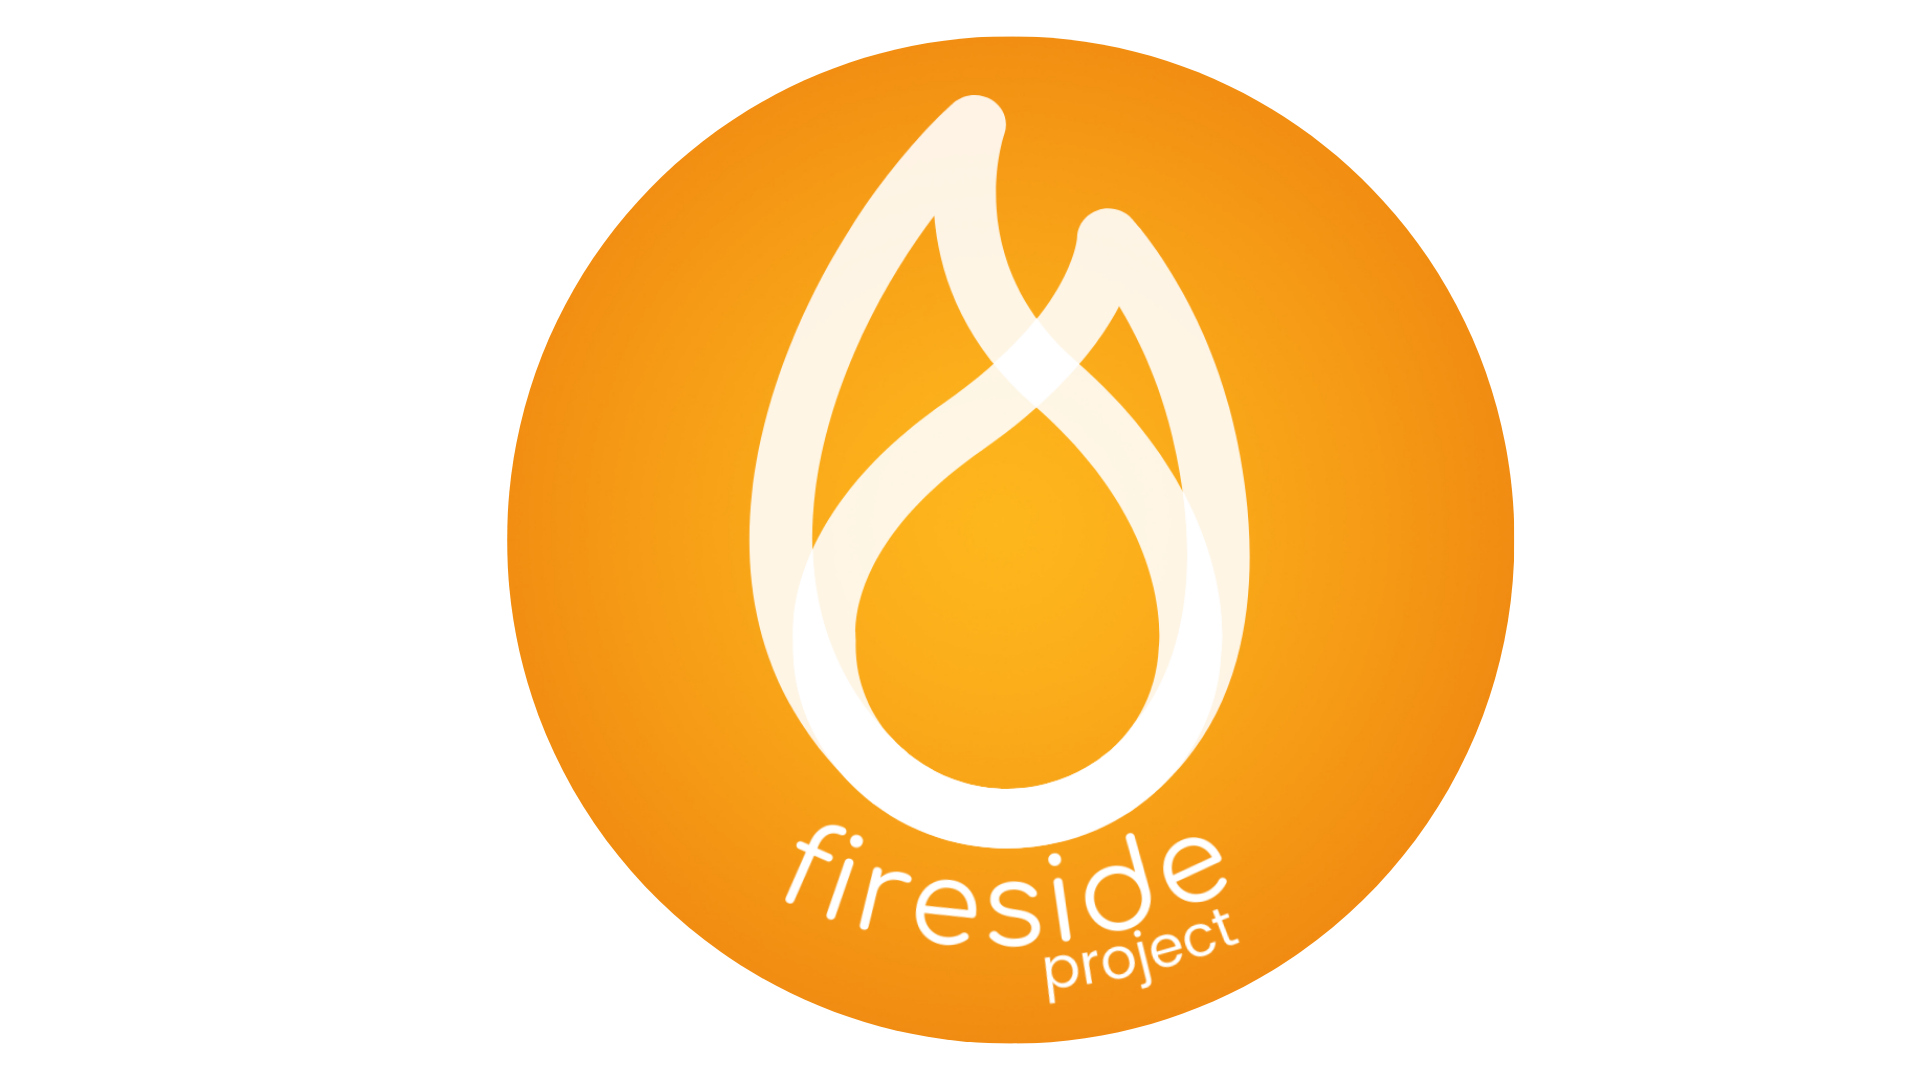 Sponsored link to Fireside